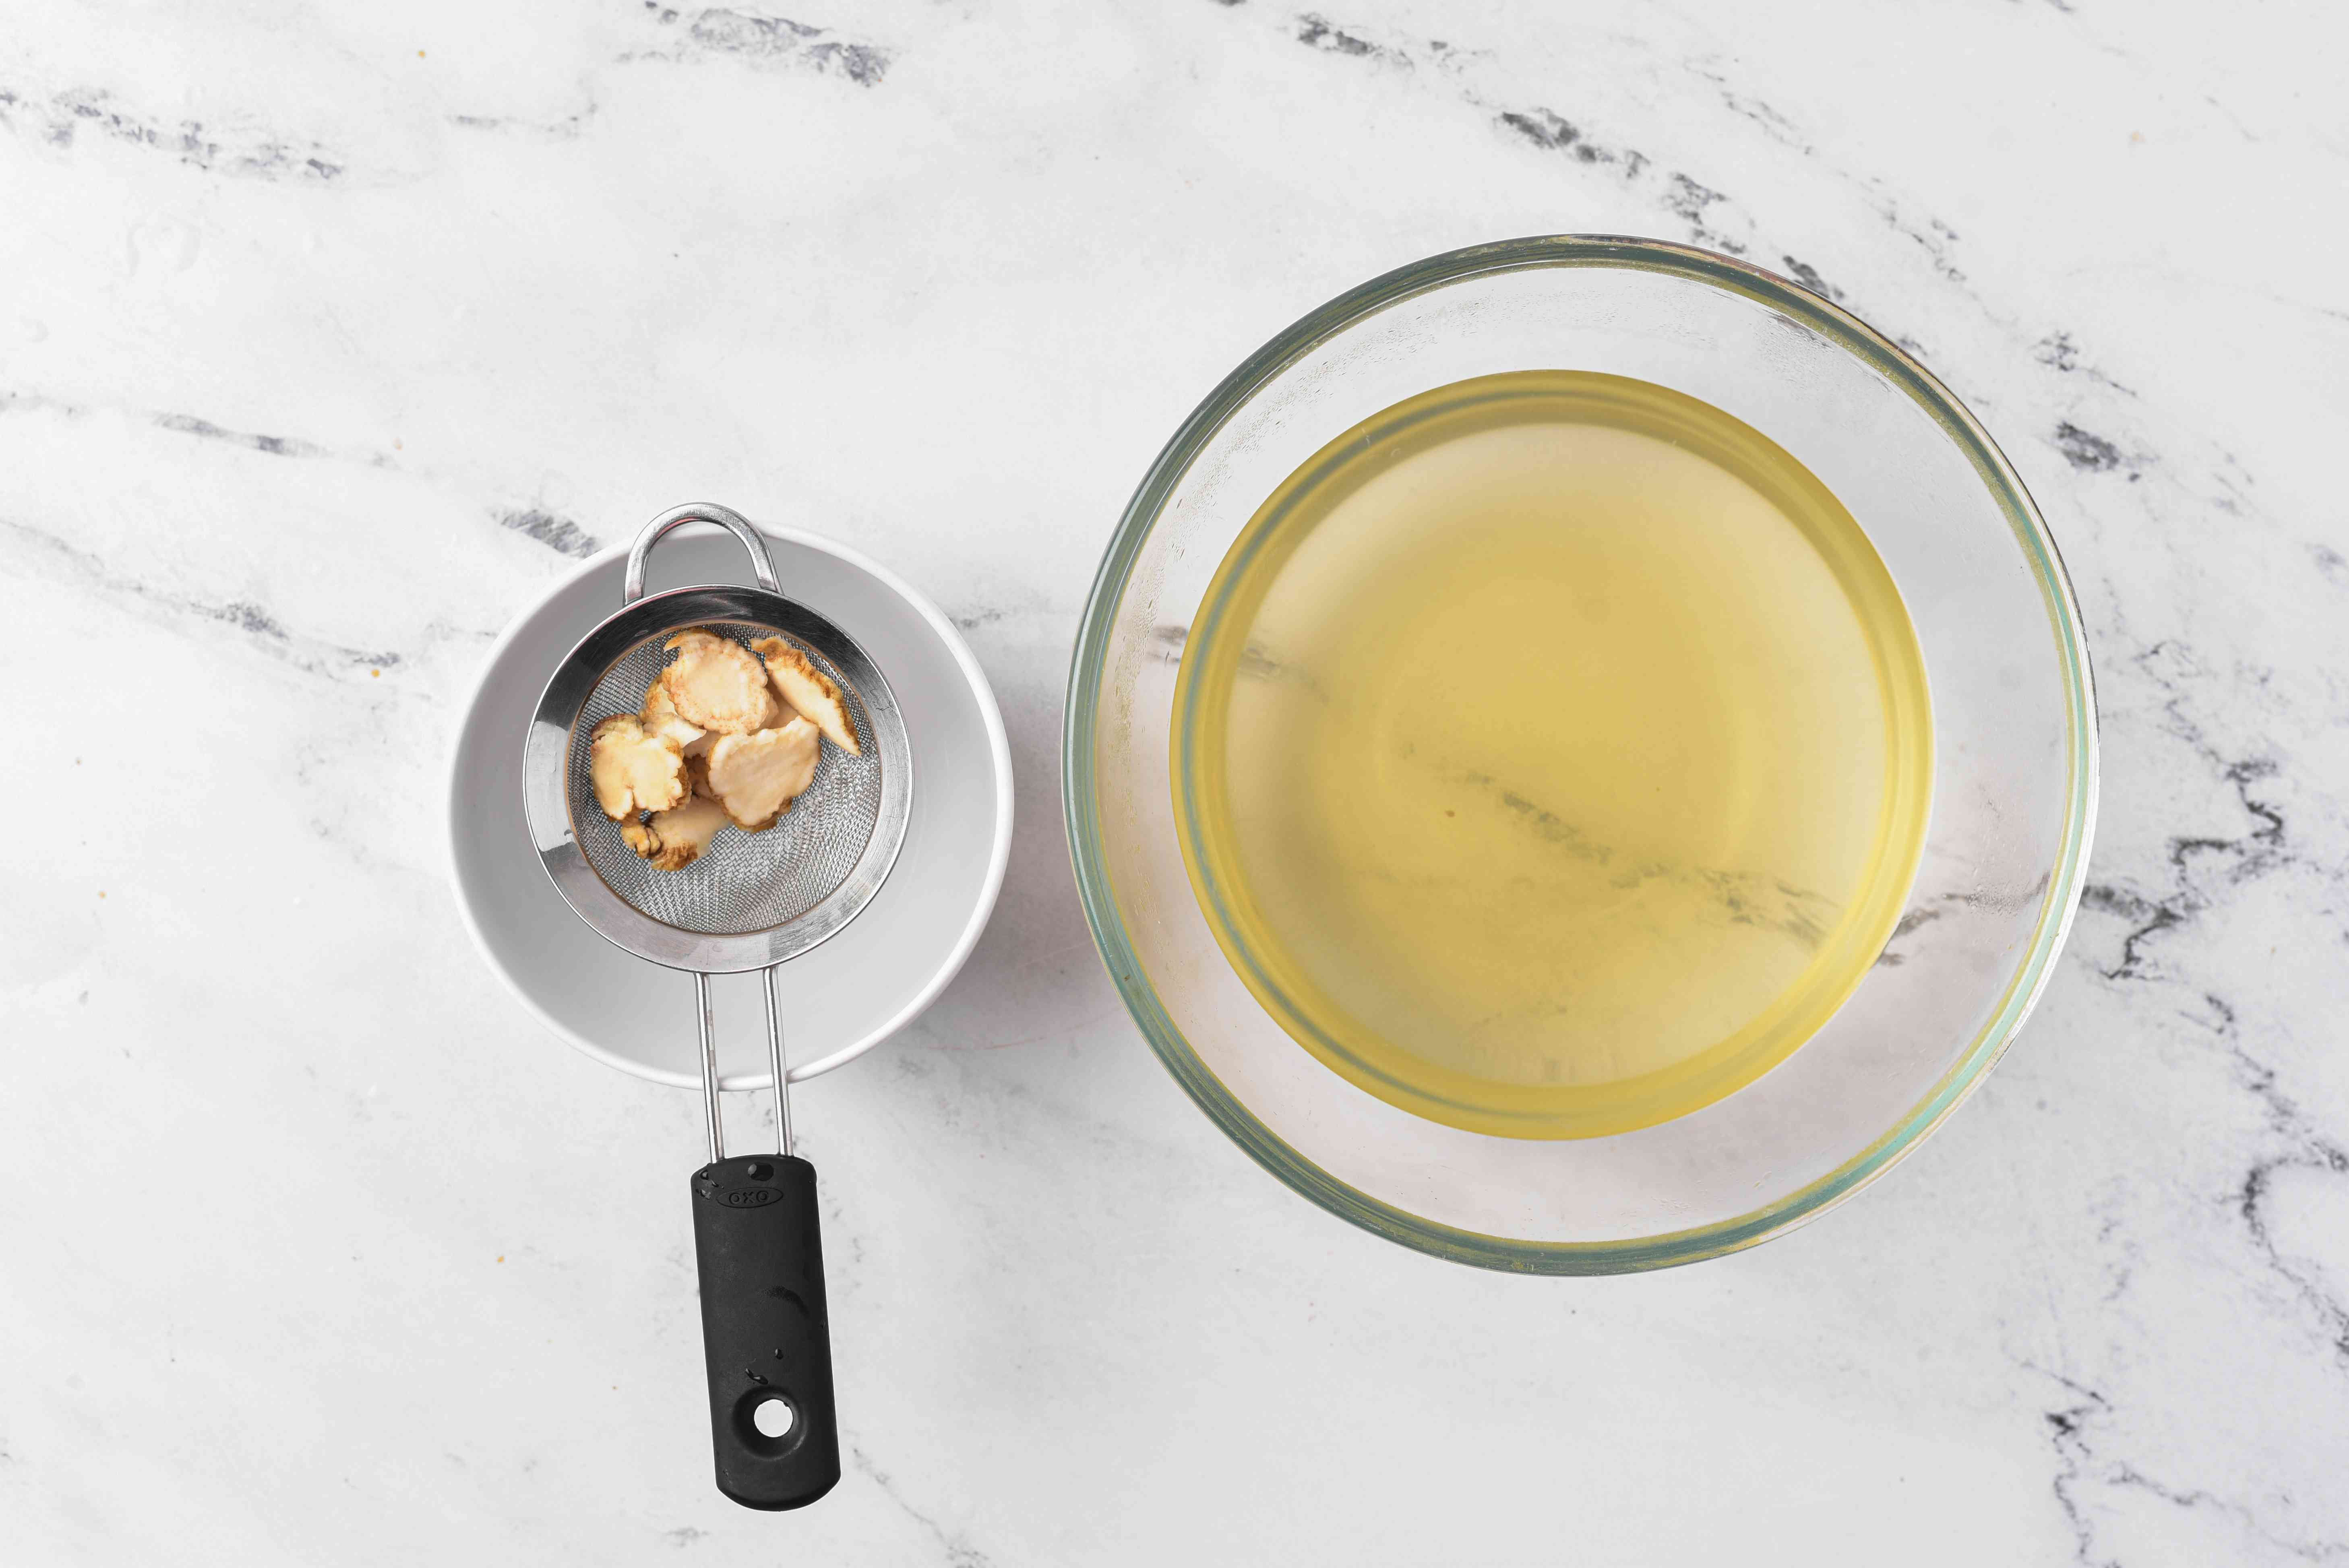 remove the ginger from the honey mixture